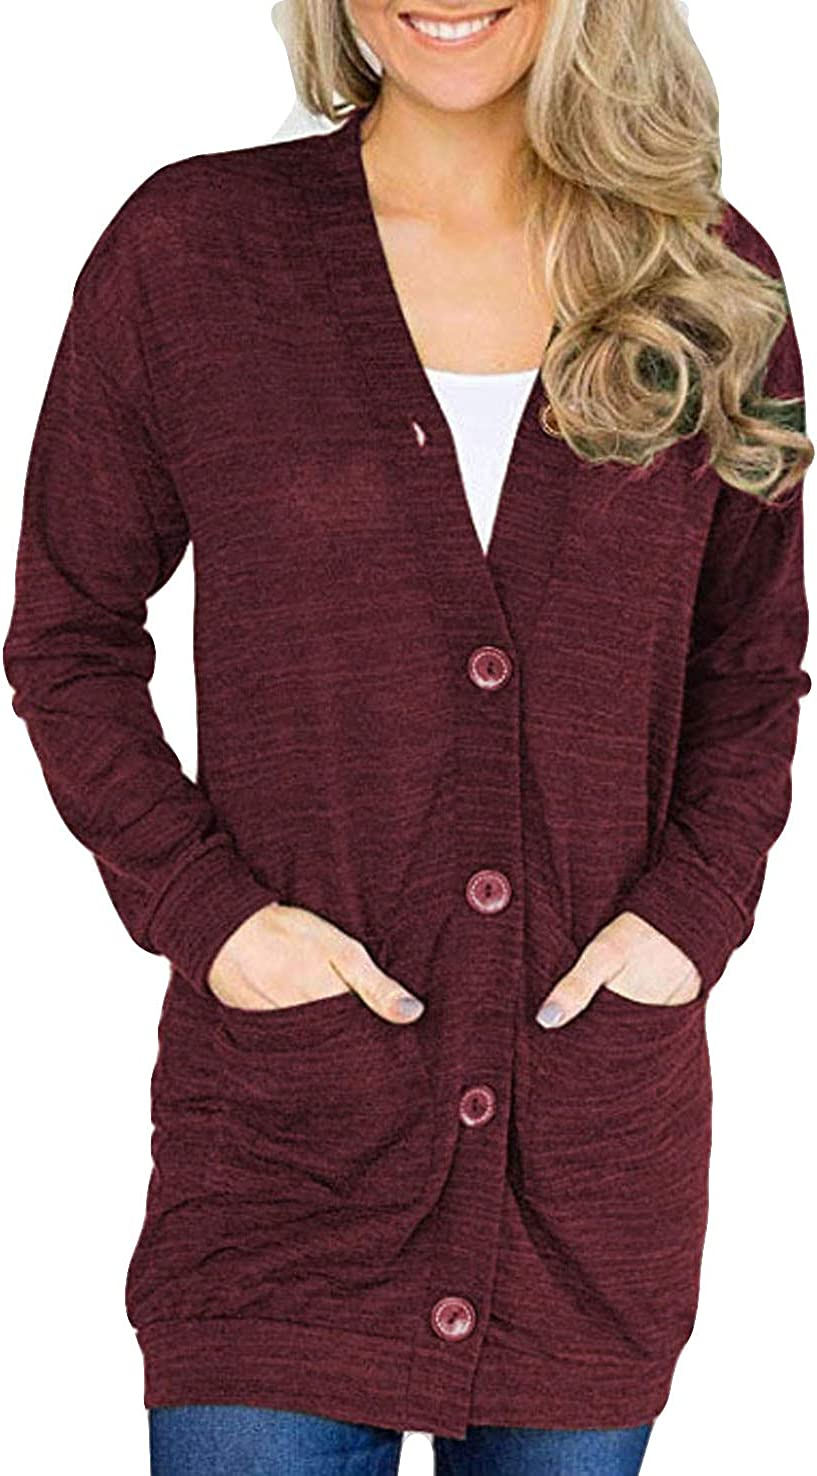 POGTMM Women's V Neck Button Down Basic Lightweight Knit Snap Long Sleeve Cardigan Sweaters with Pockets